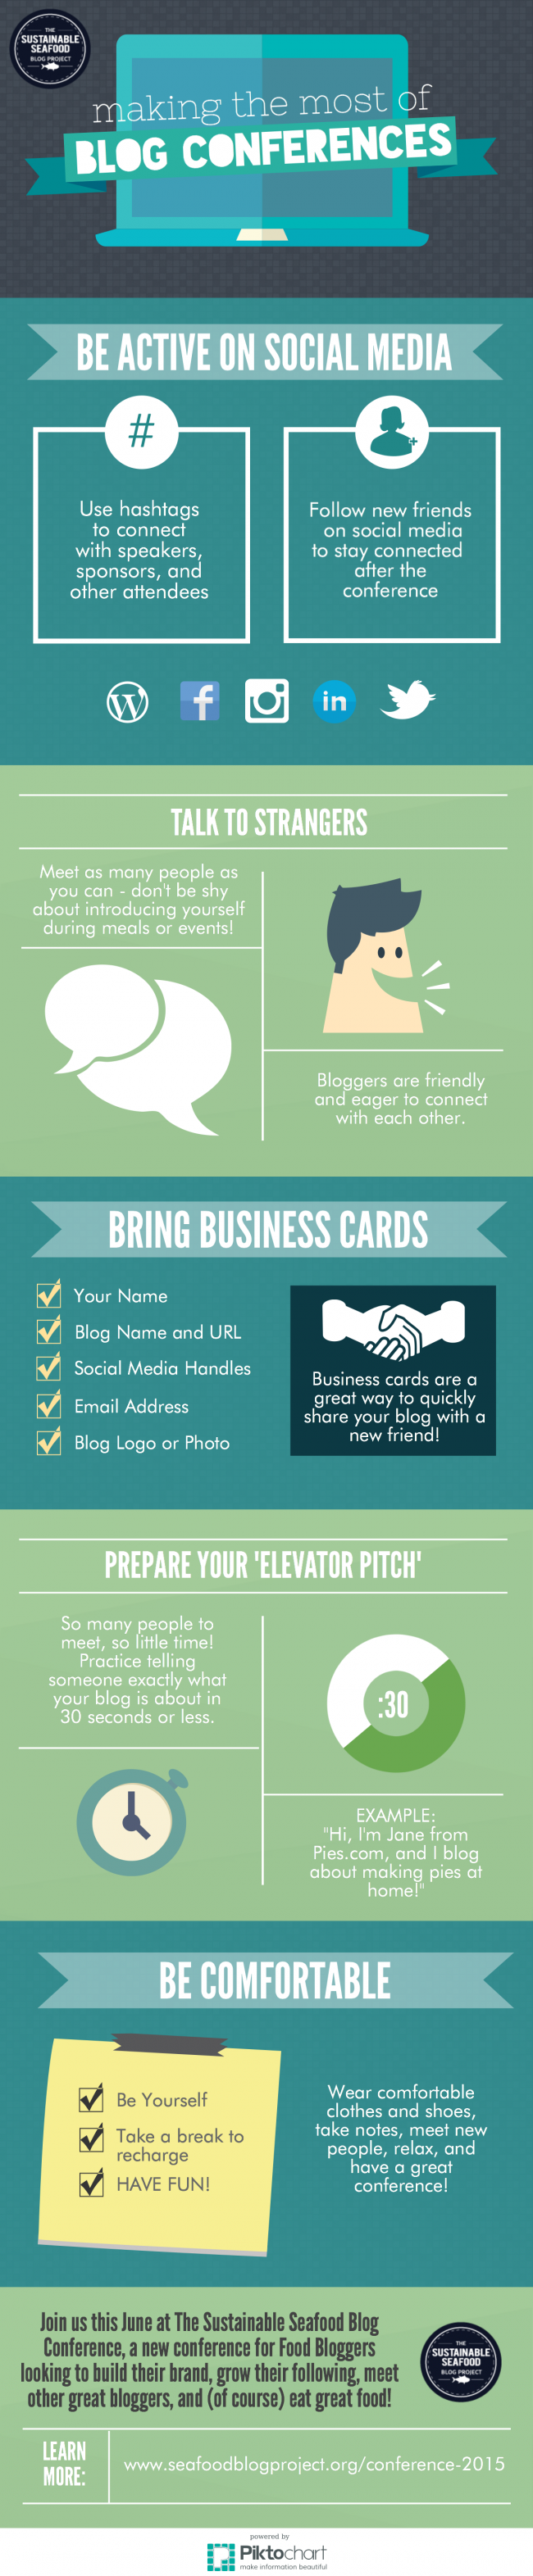 10 Tips to Make the Most Out of the Sustainable Seafood Blogging Conference #SSBC15